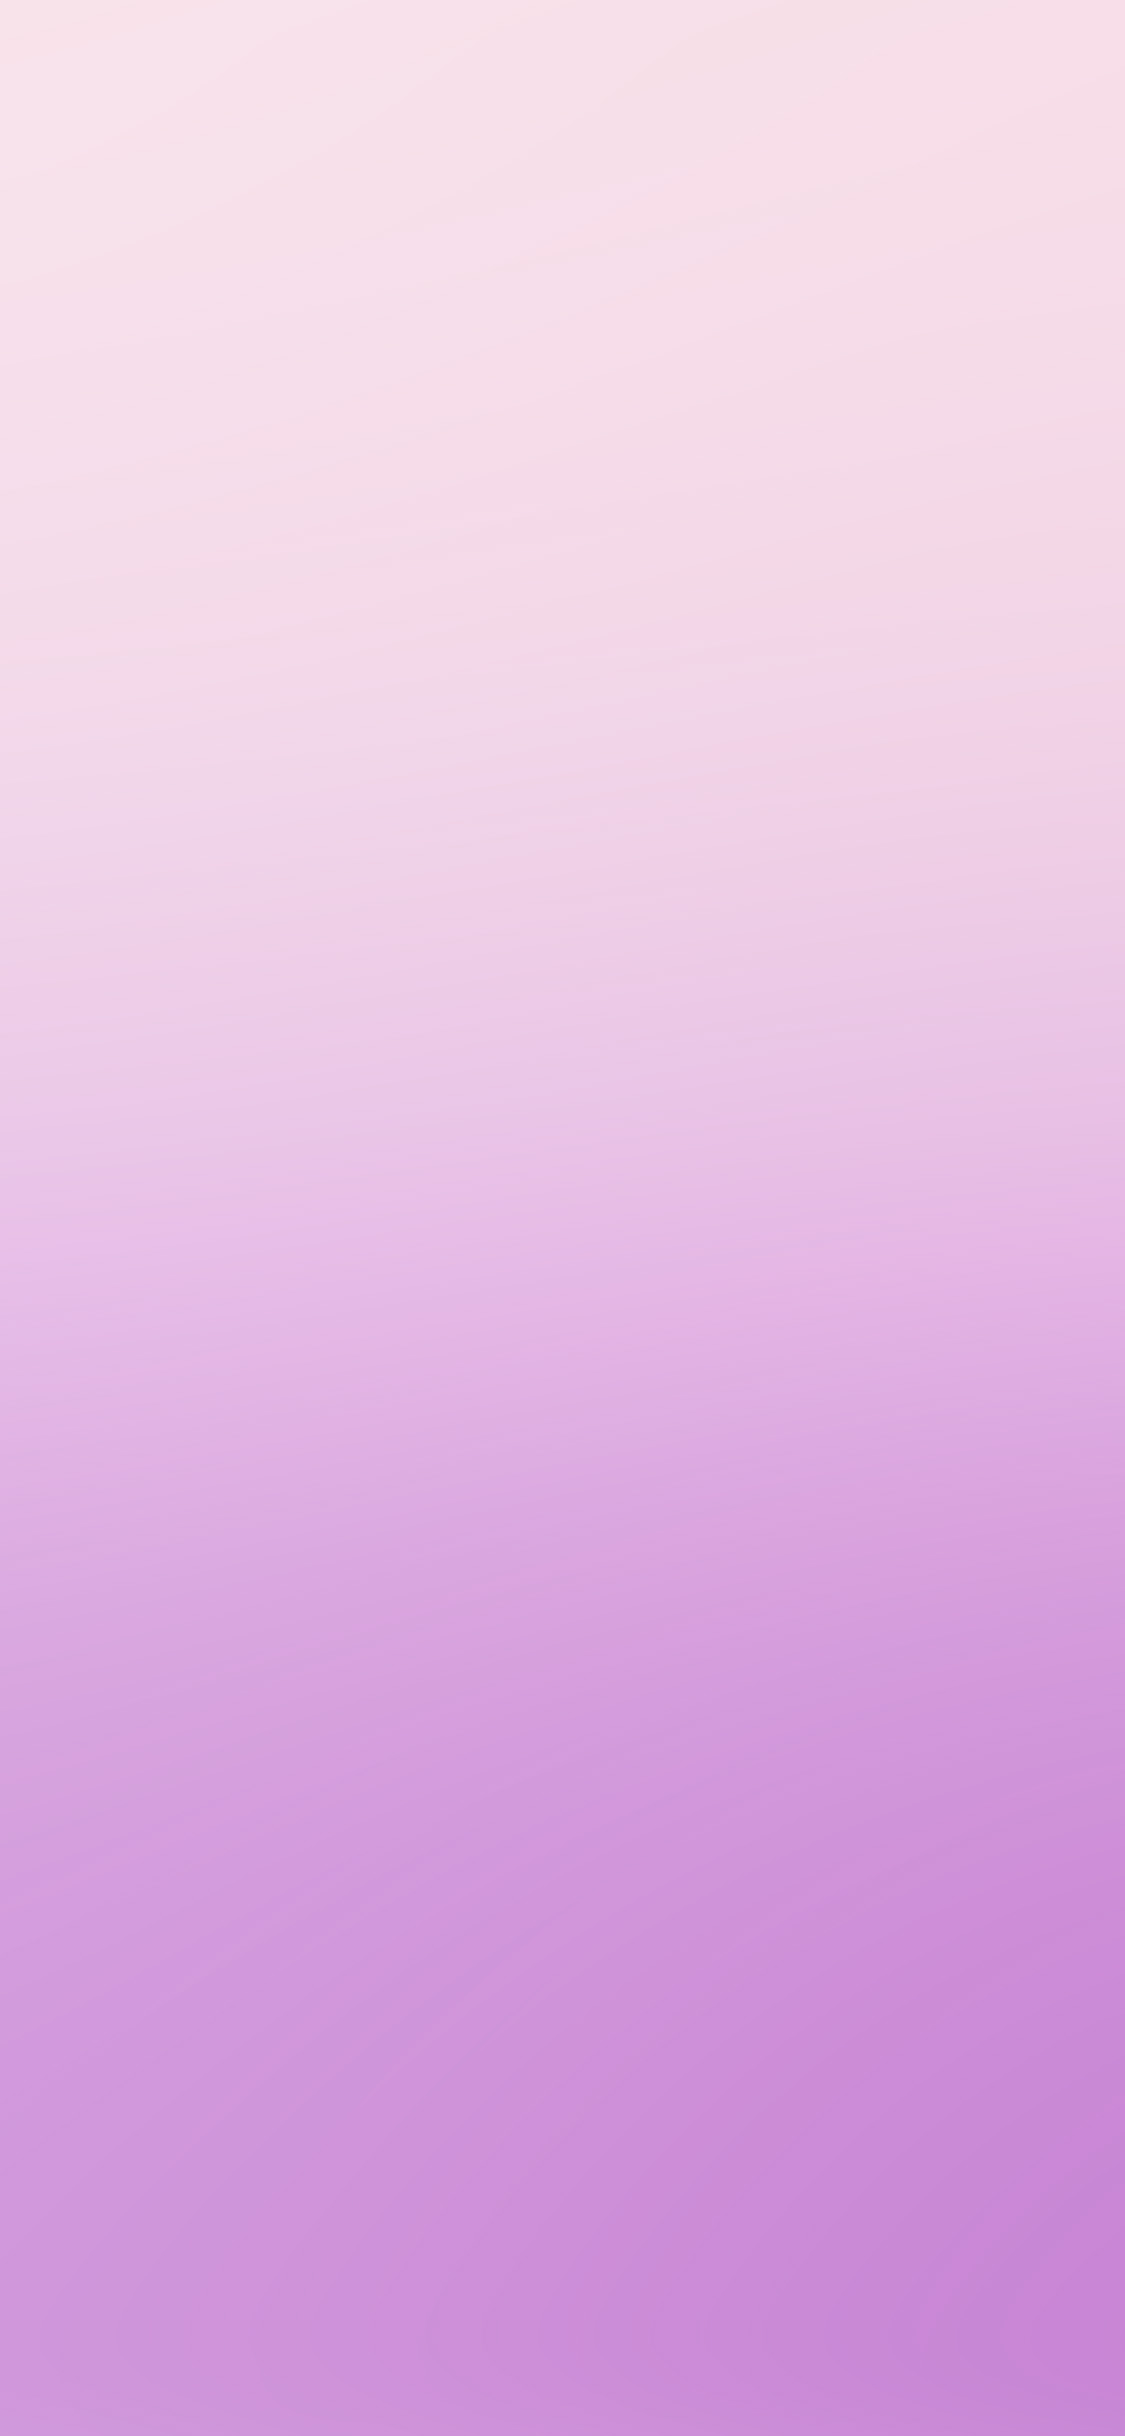 sl95-soft-pastel-violet-blur-gradation-wallpaper